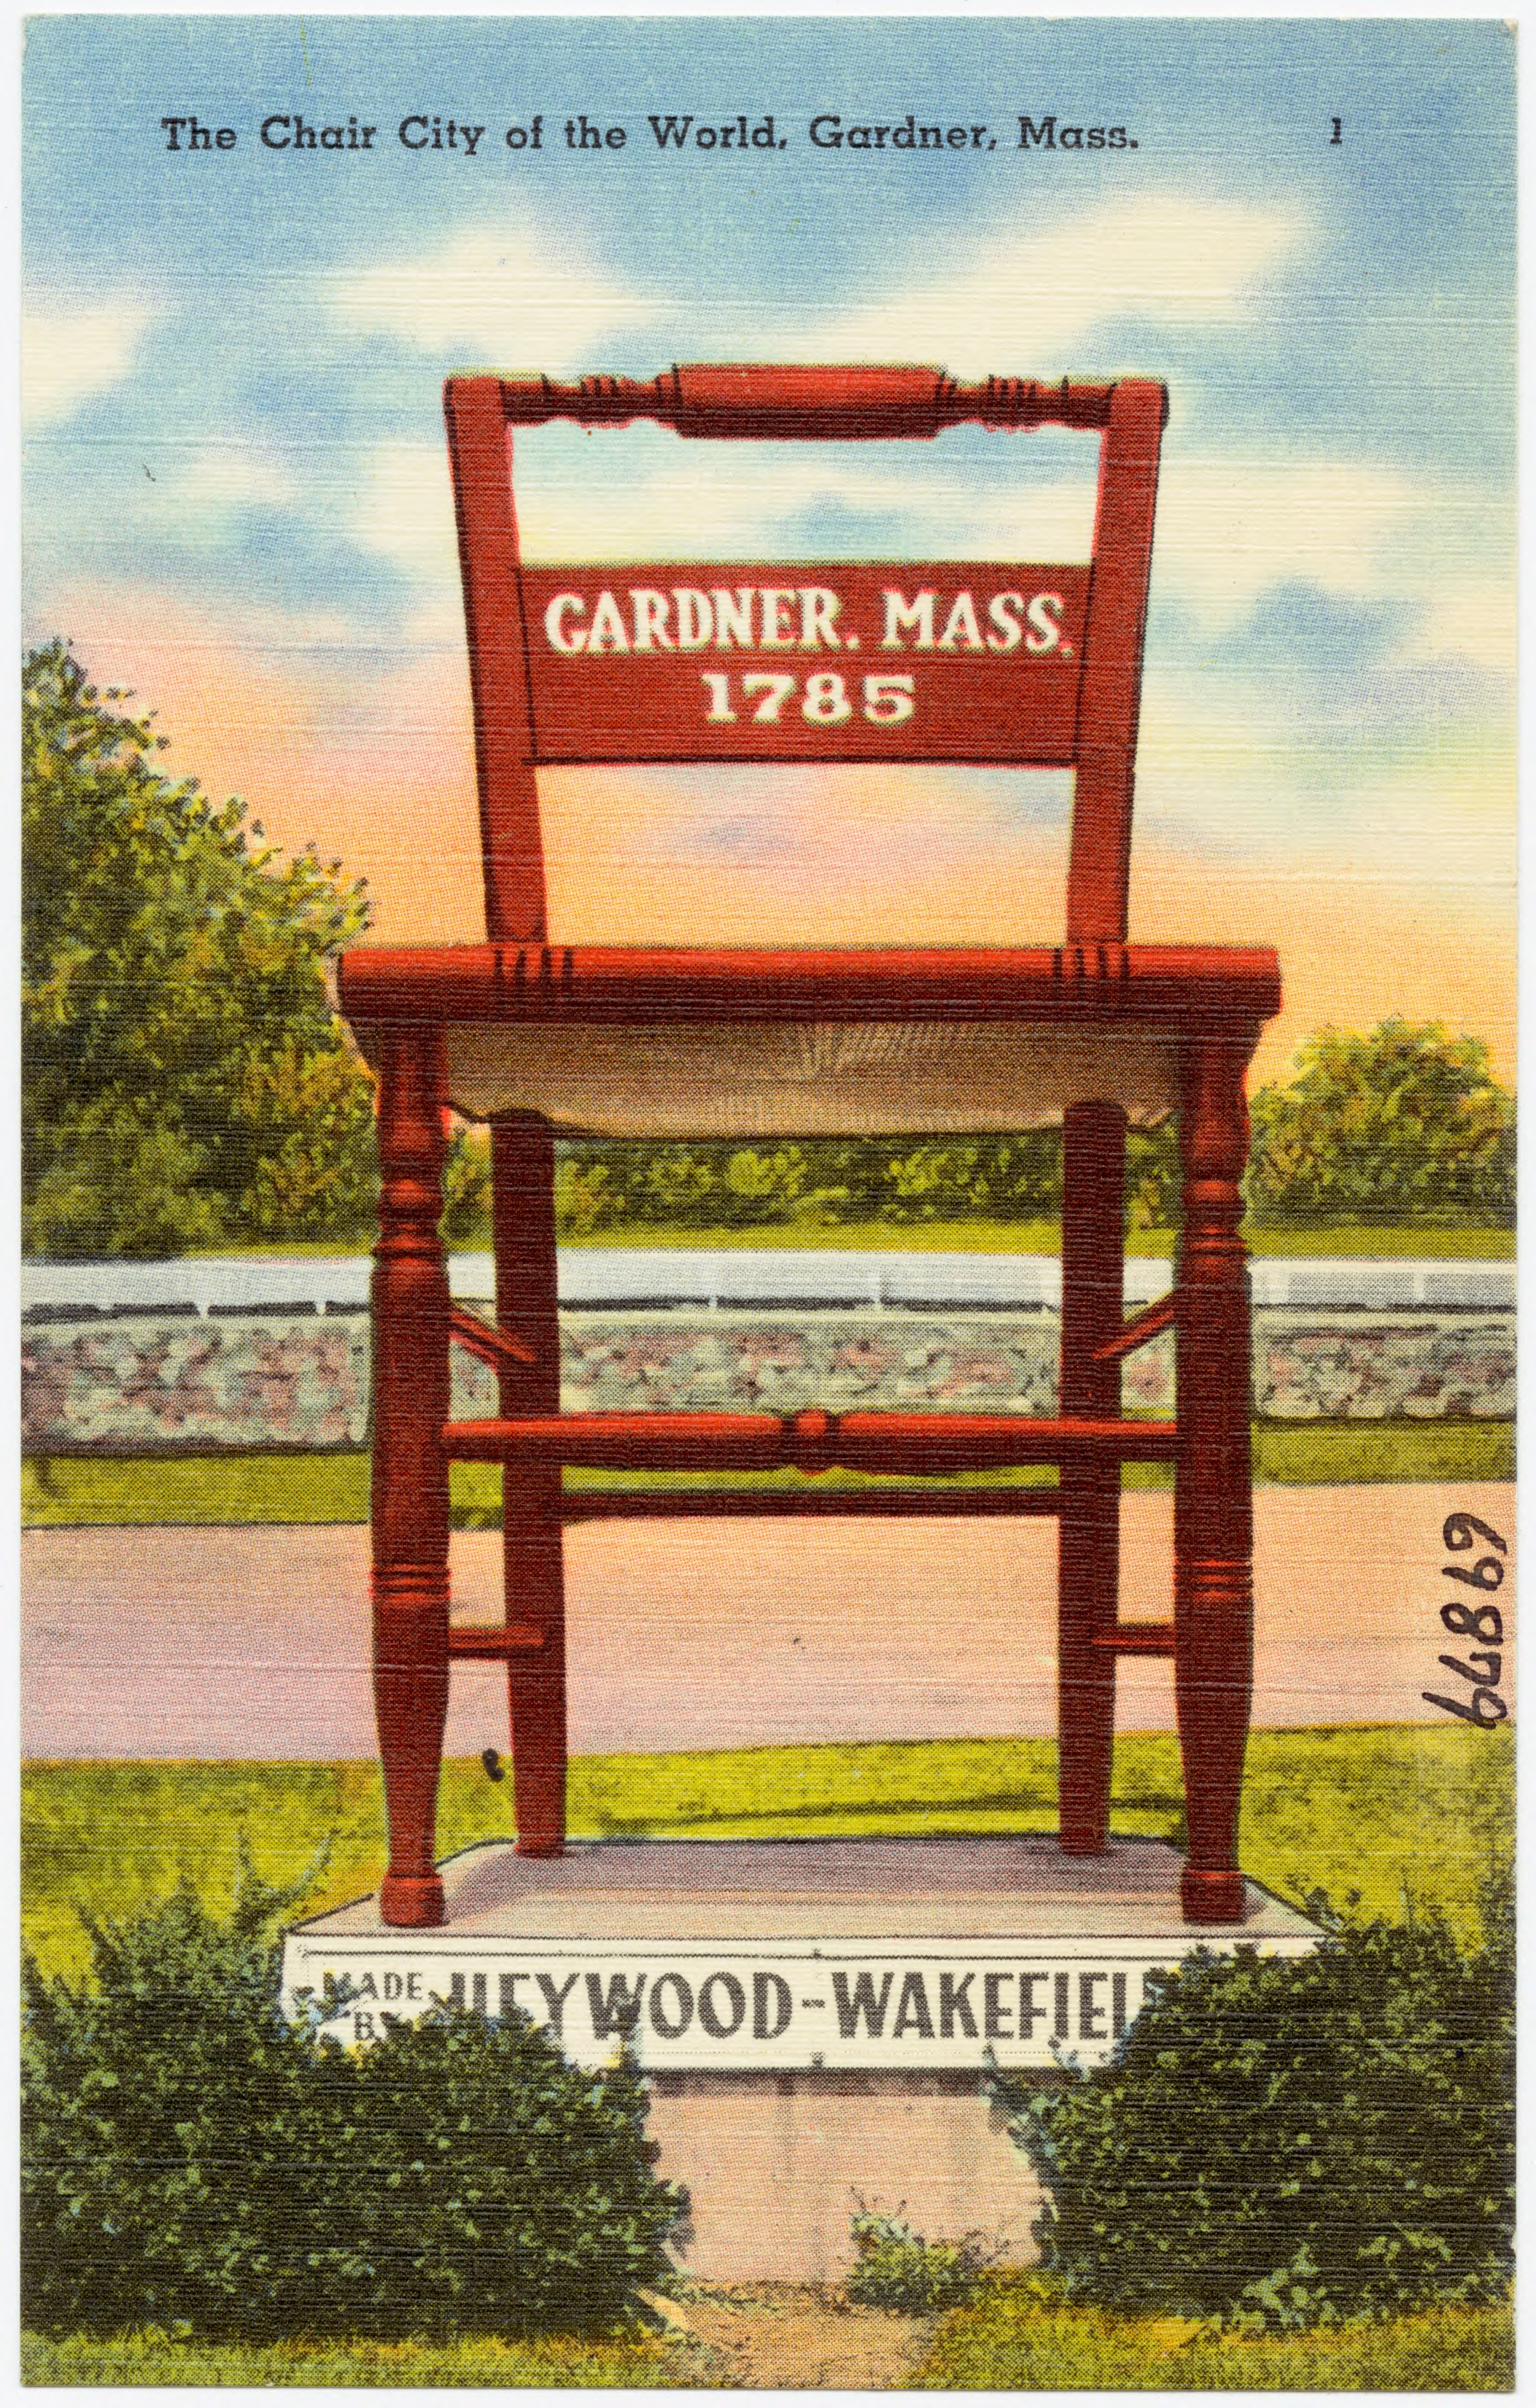 File:The Chair City Of The World, Gardner, Mass (69879).